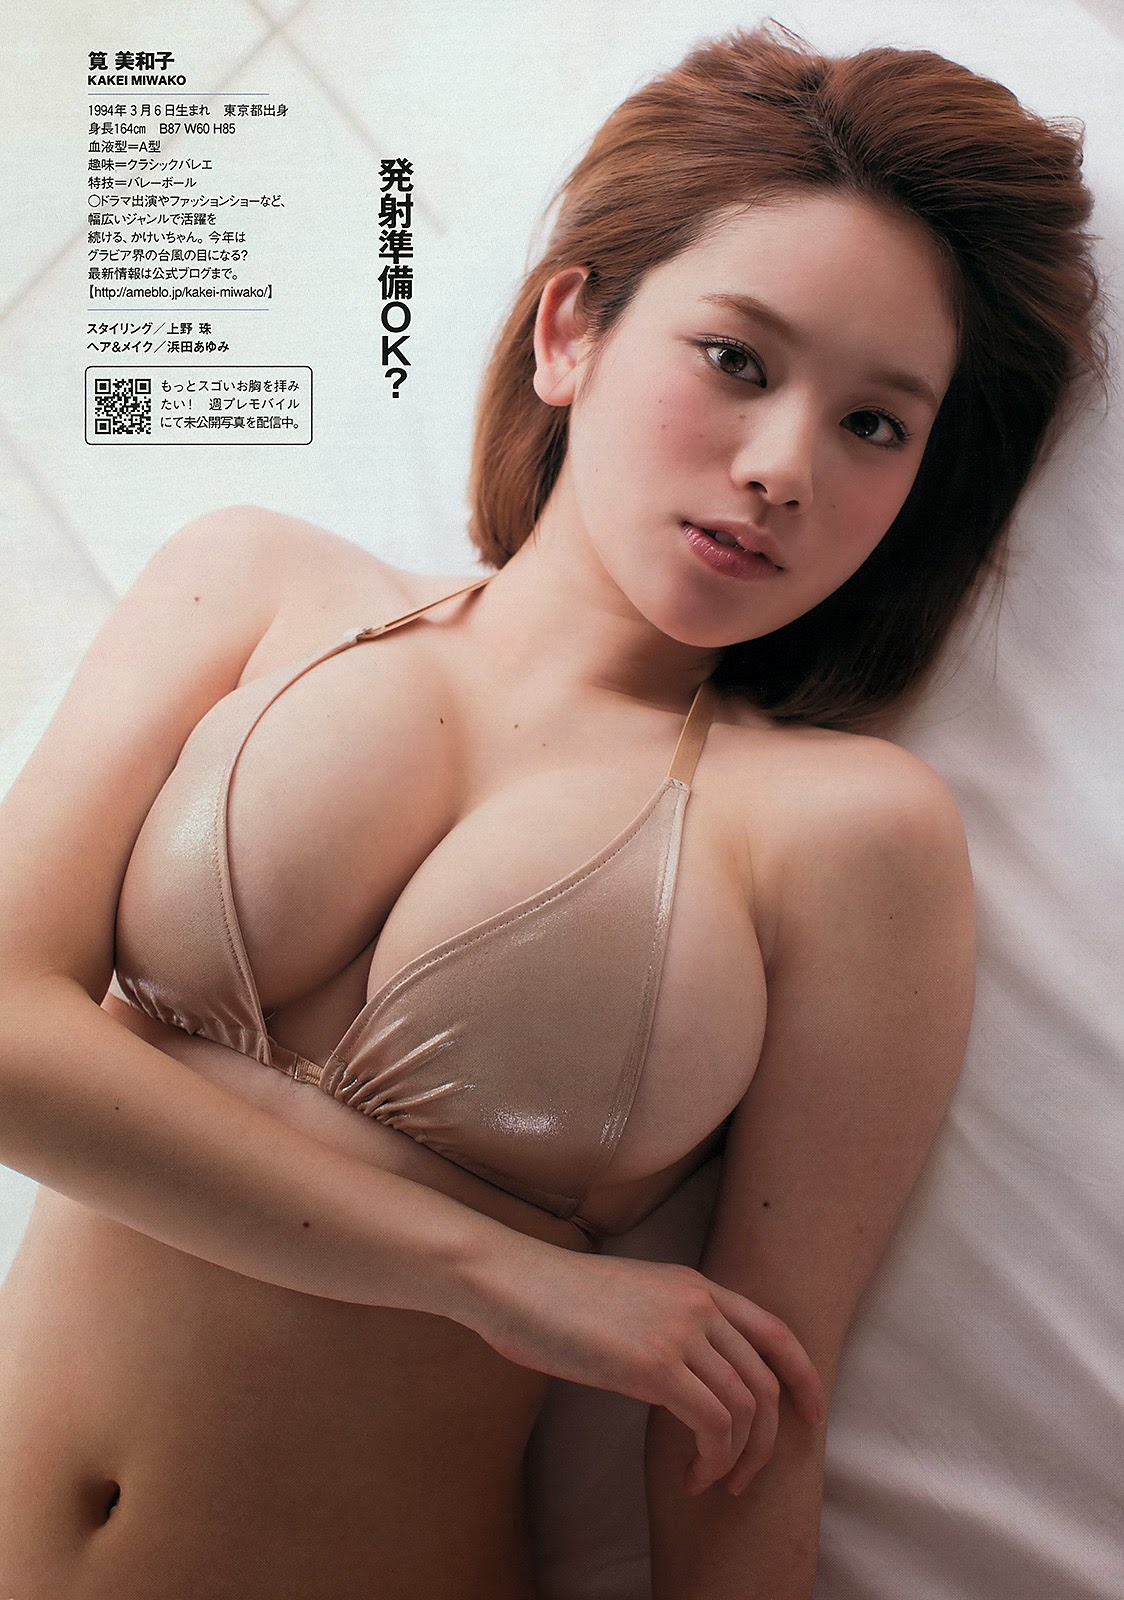 Japanese Sexy Model: Miwako Kakei in Hot Pictures